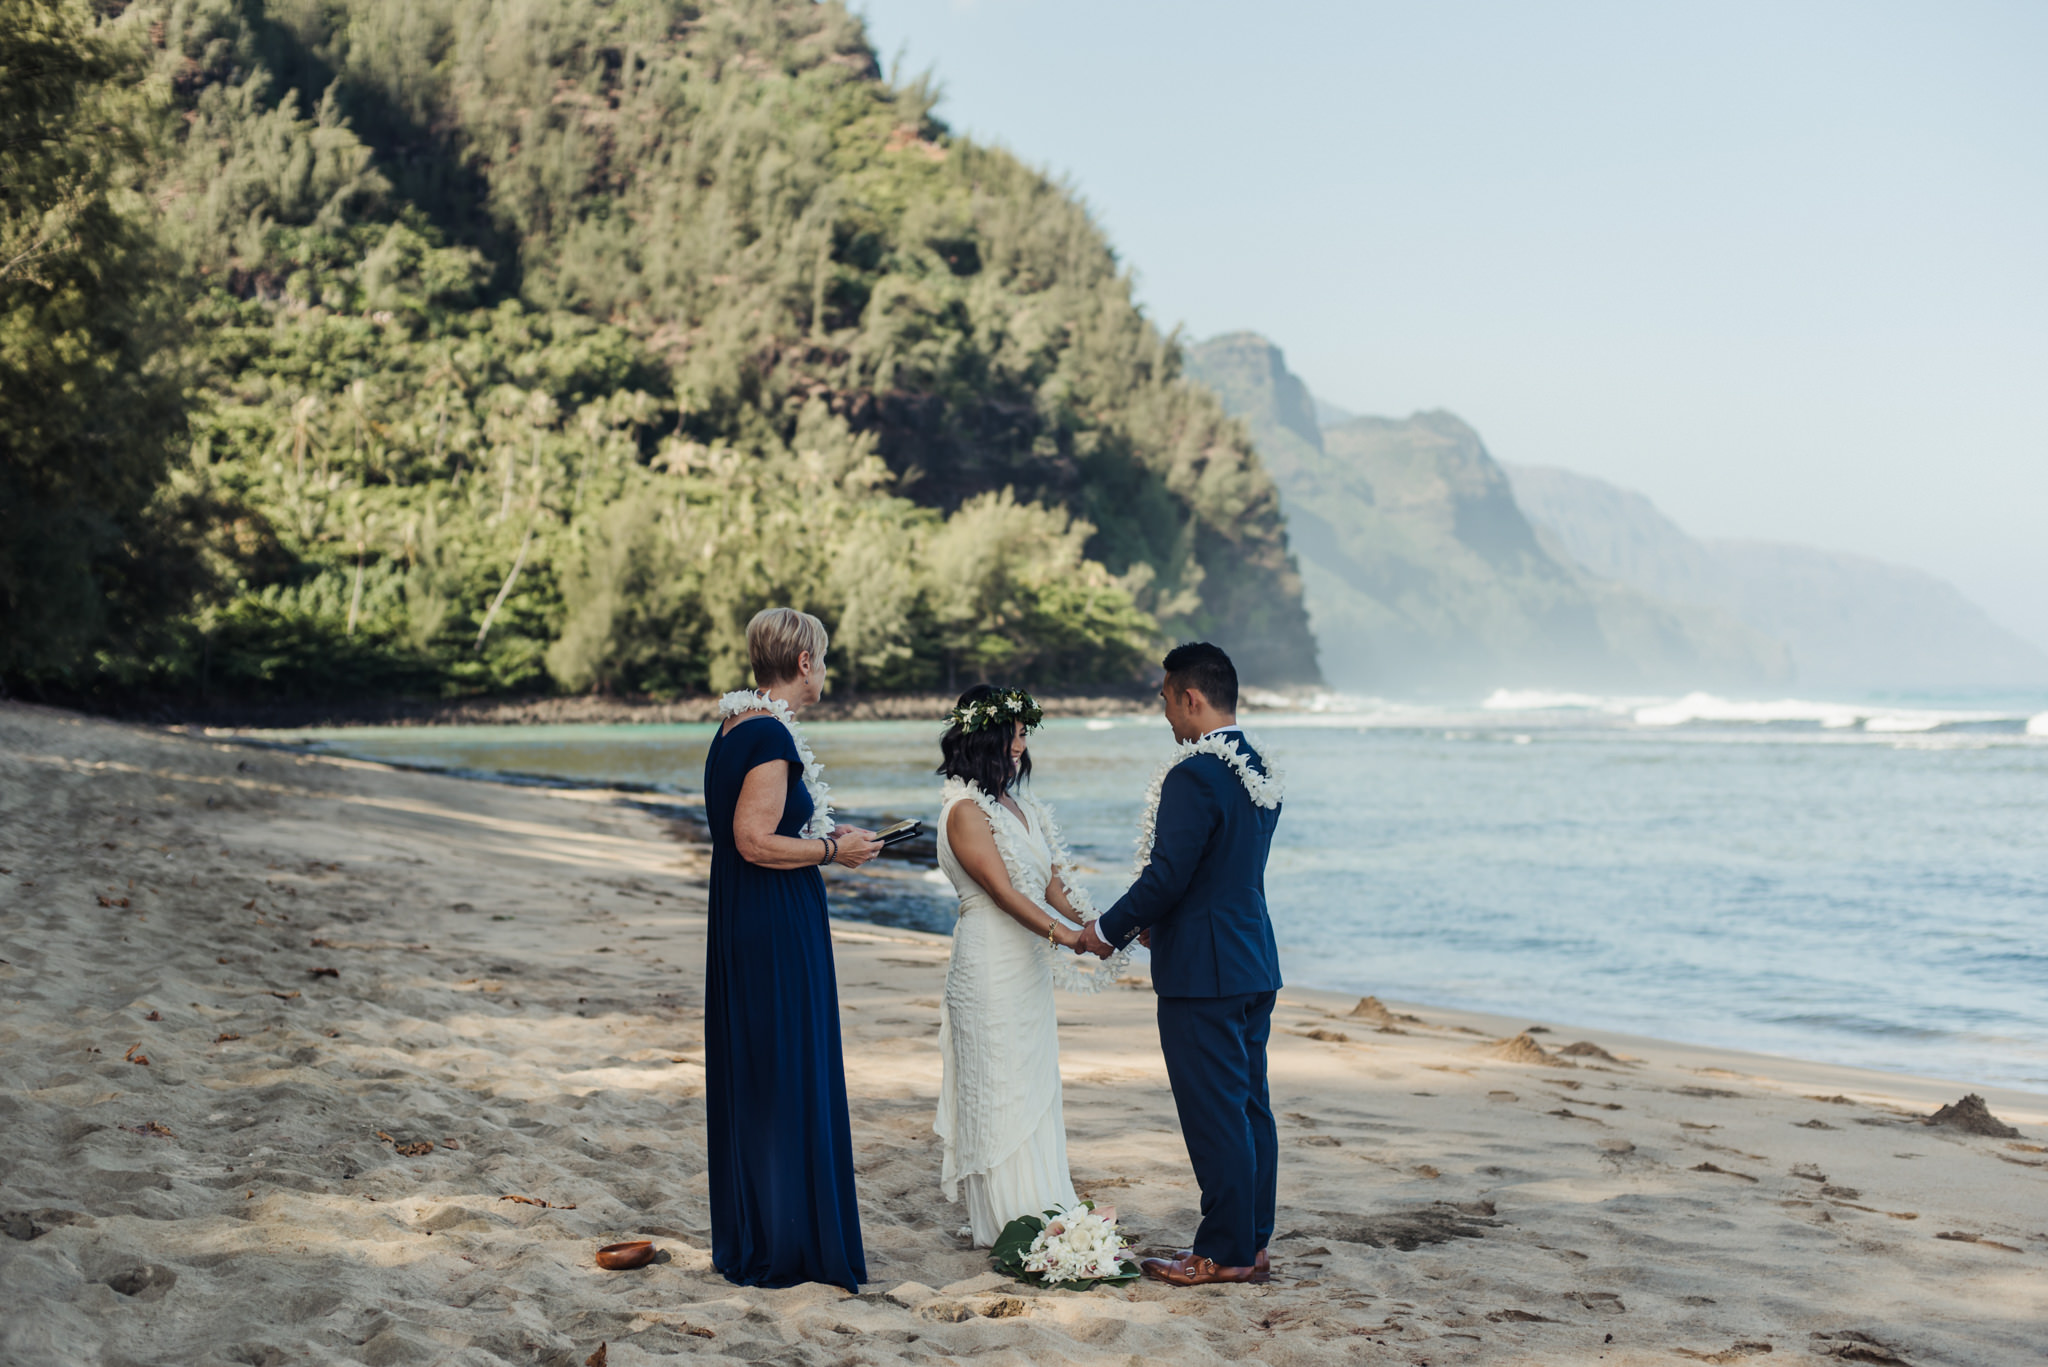 Bride and groom holding hands on beach in Hawaiian wedding ceremony